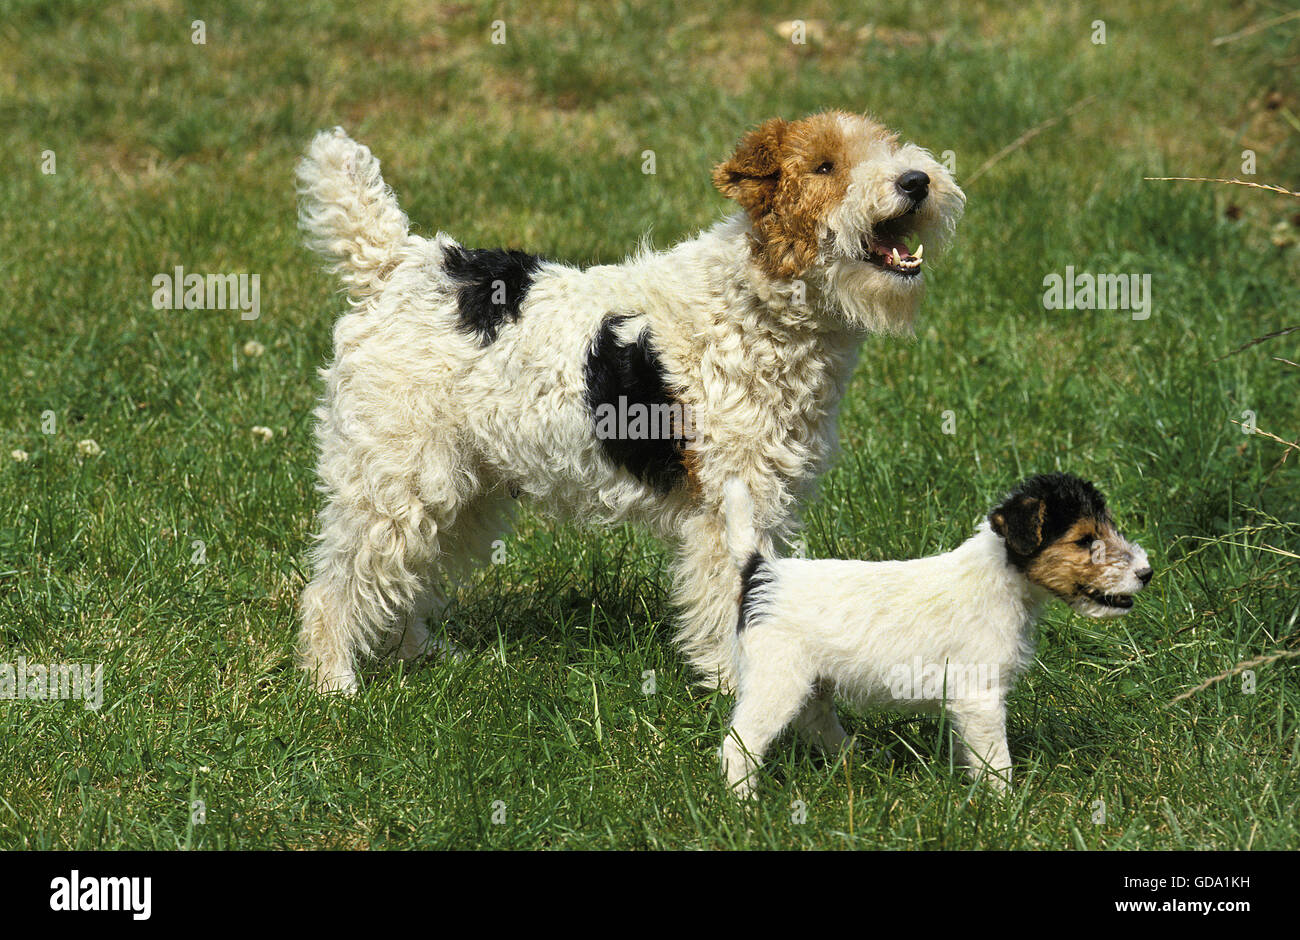 WIRE-HAIRED FOX TERRIER, MOTHER WITH PUPPY ON GRASS Stock Photo ...